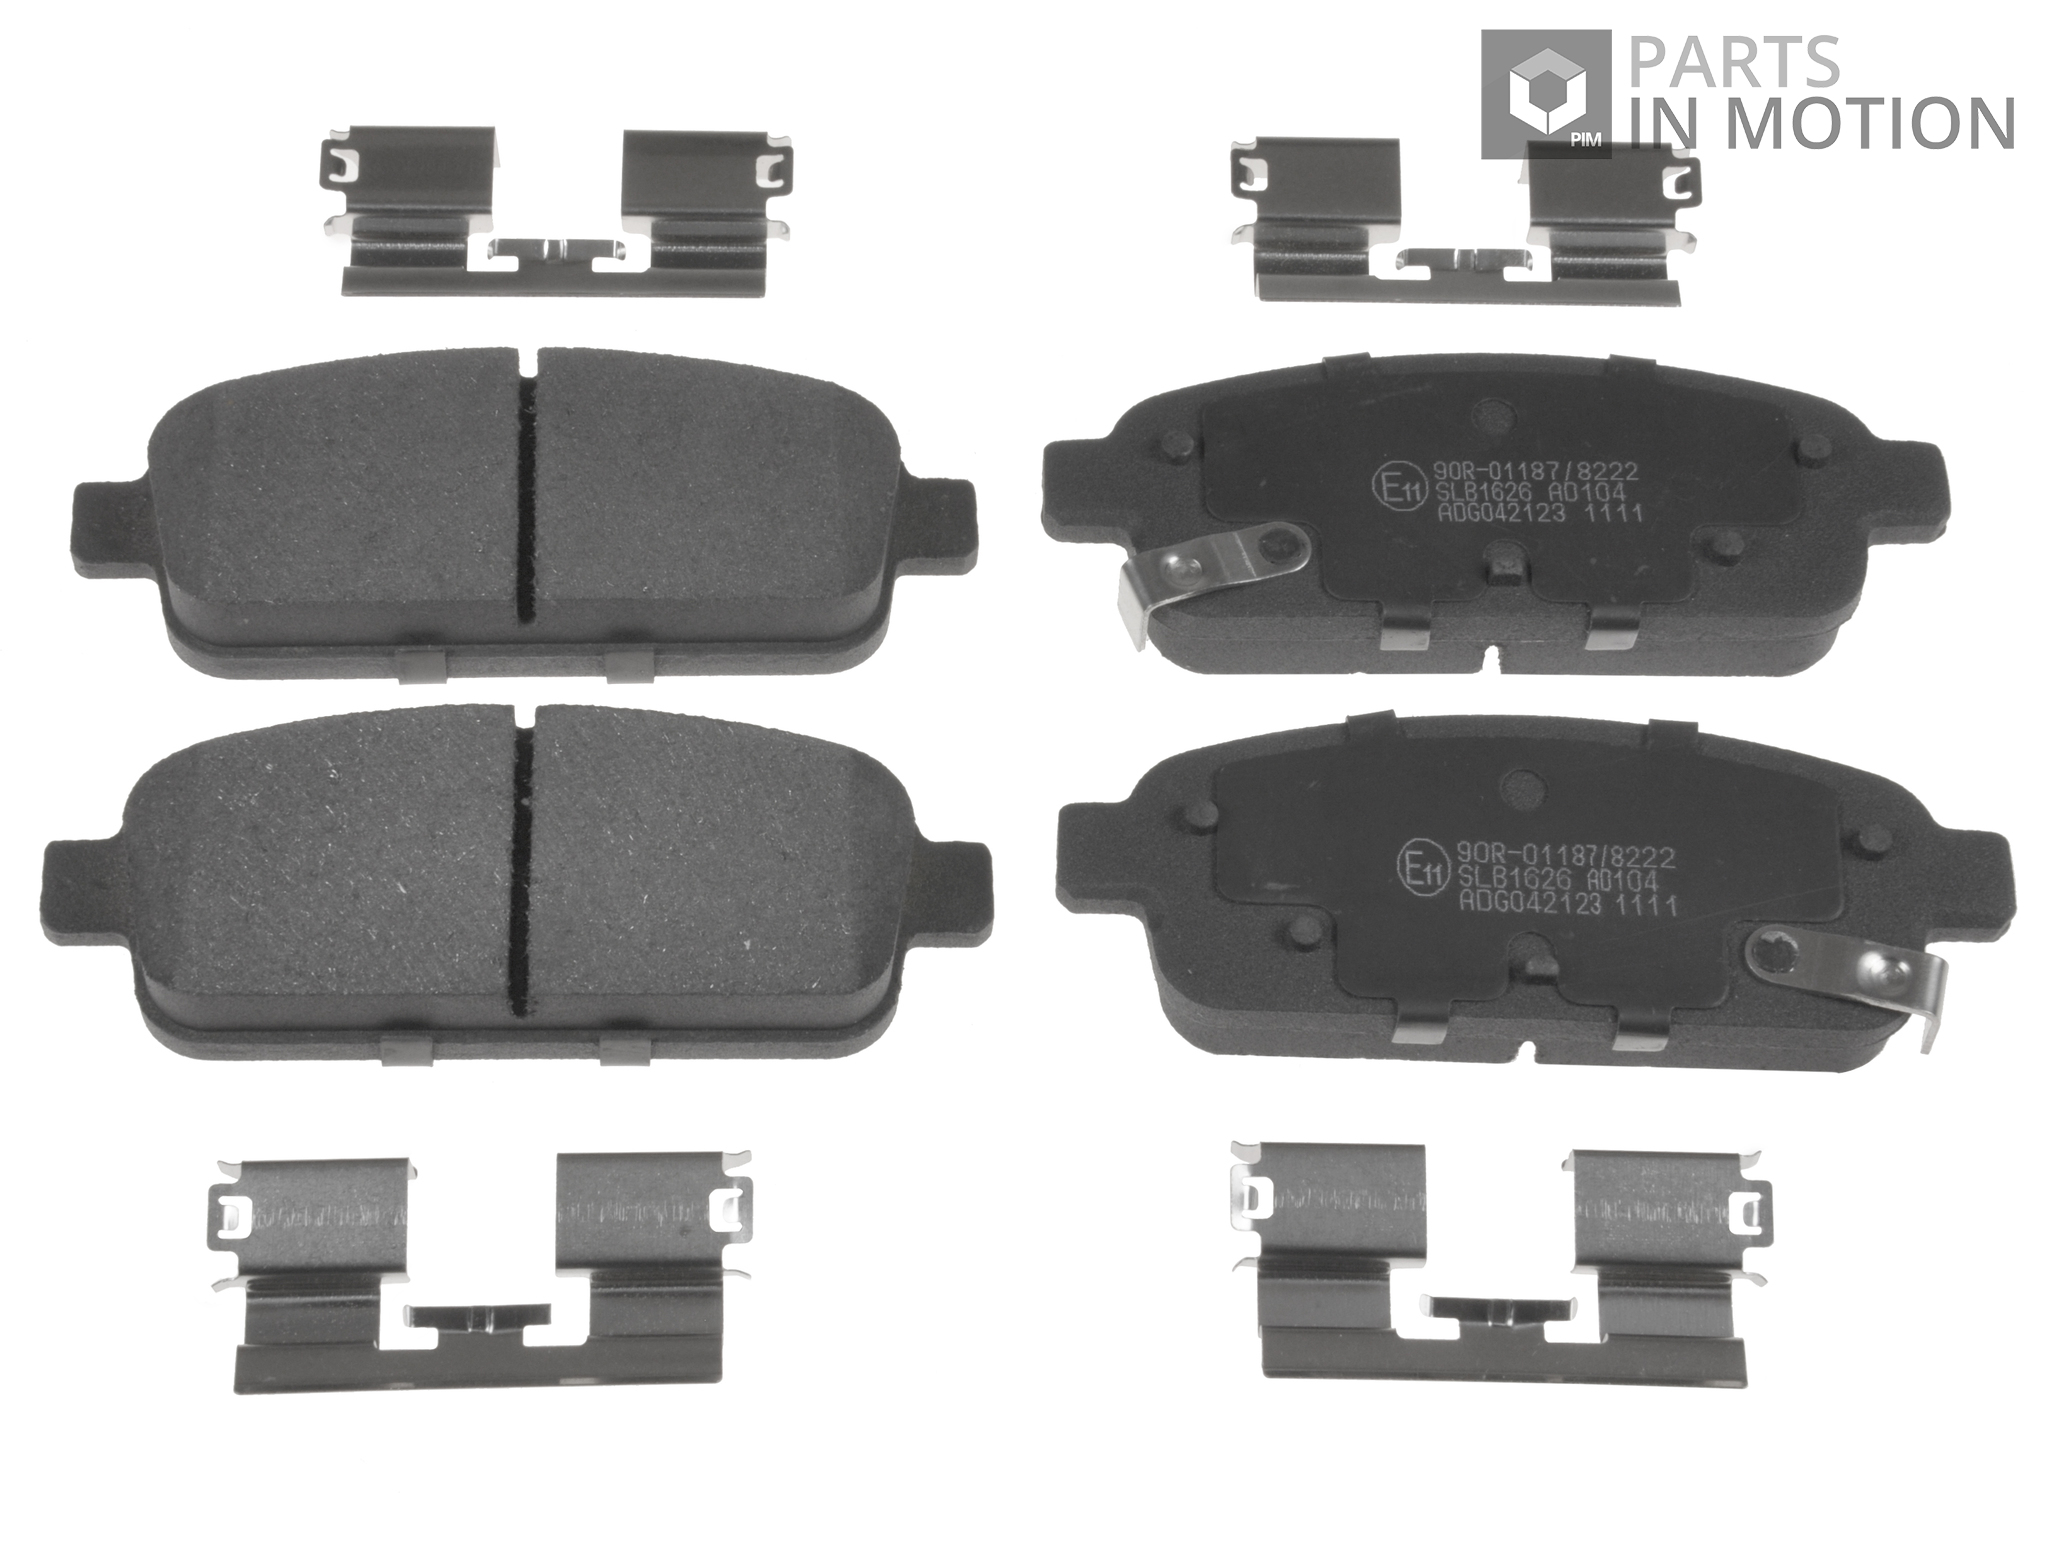 JURATEK FRONT SET OF BRAKE PADS  FOR HYUNDAI TUCSON 1991CCM 150HP 110KW